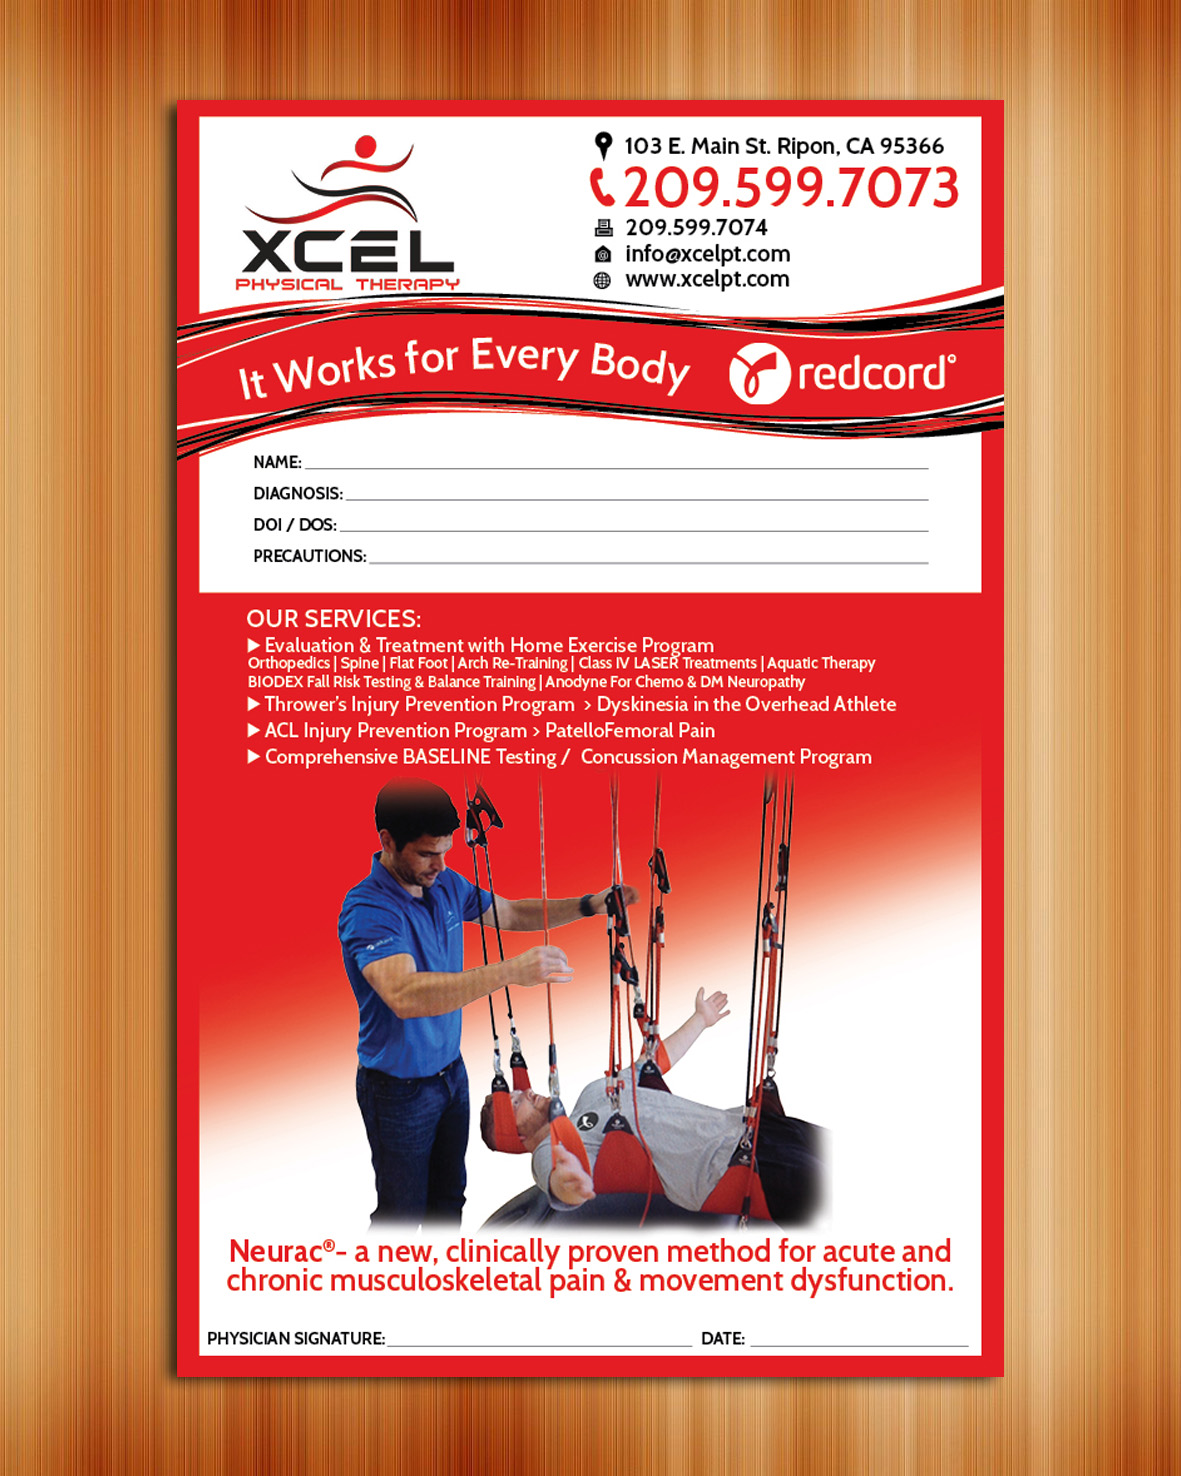 Referral Pad for XCEL Physical Therapy - Medical